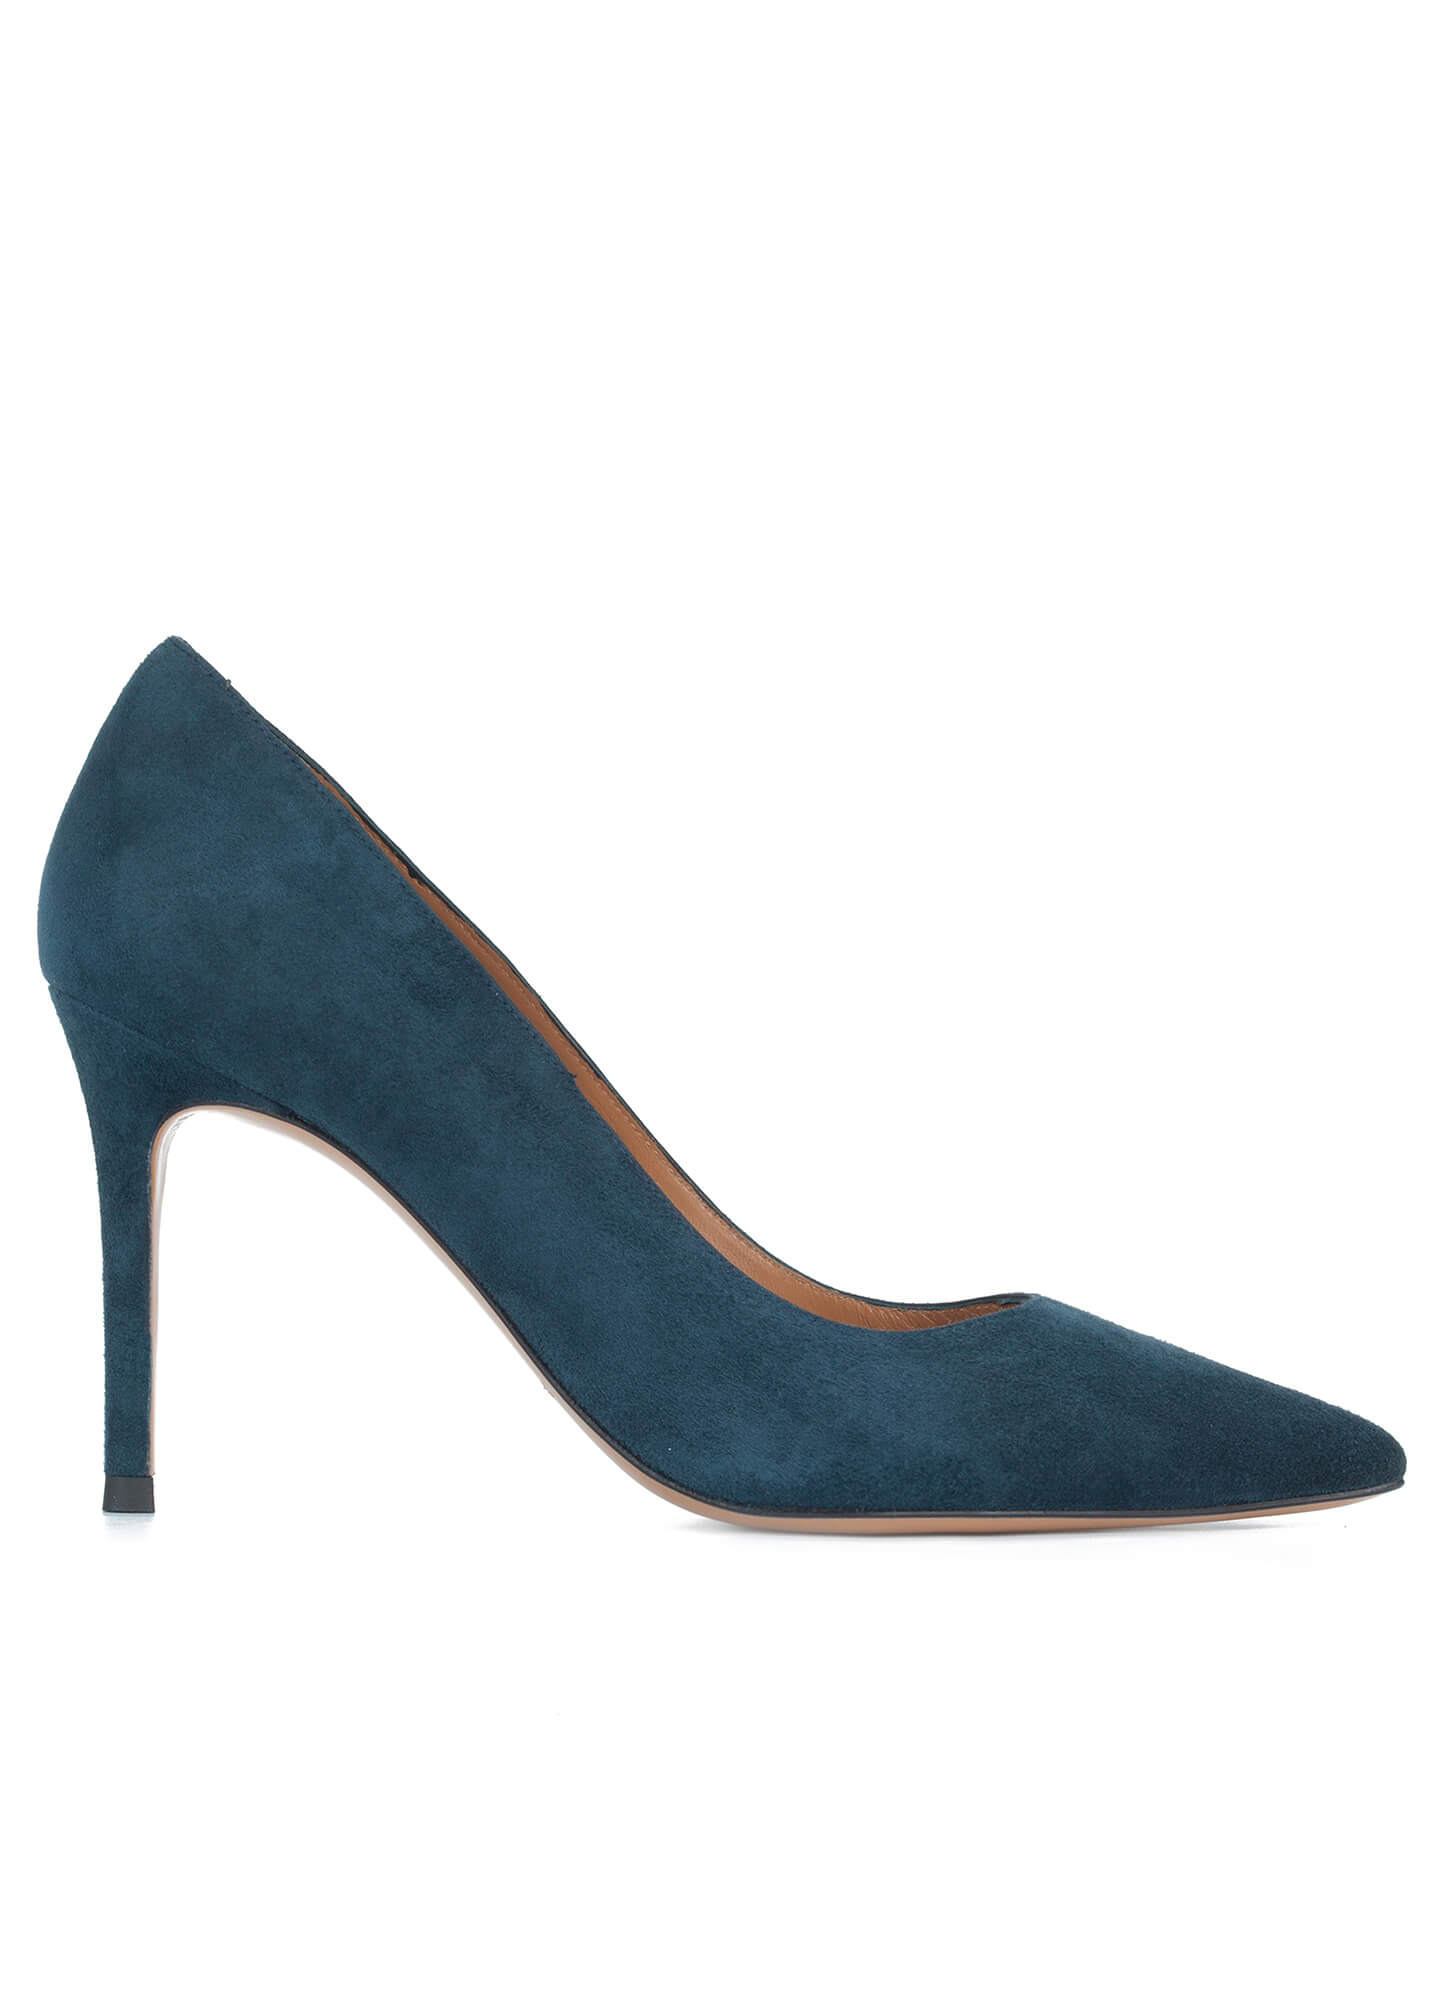 Zapatos Salon Azules Online Blue High Heel Pumps Online Shoe Store Pura Lopez Pura